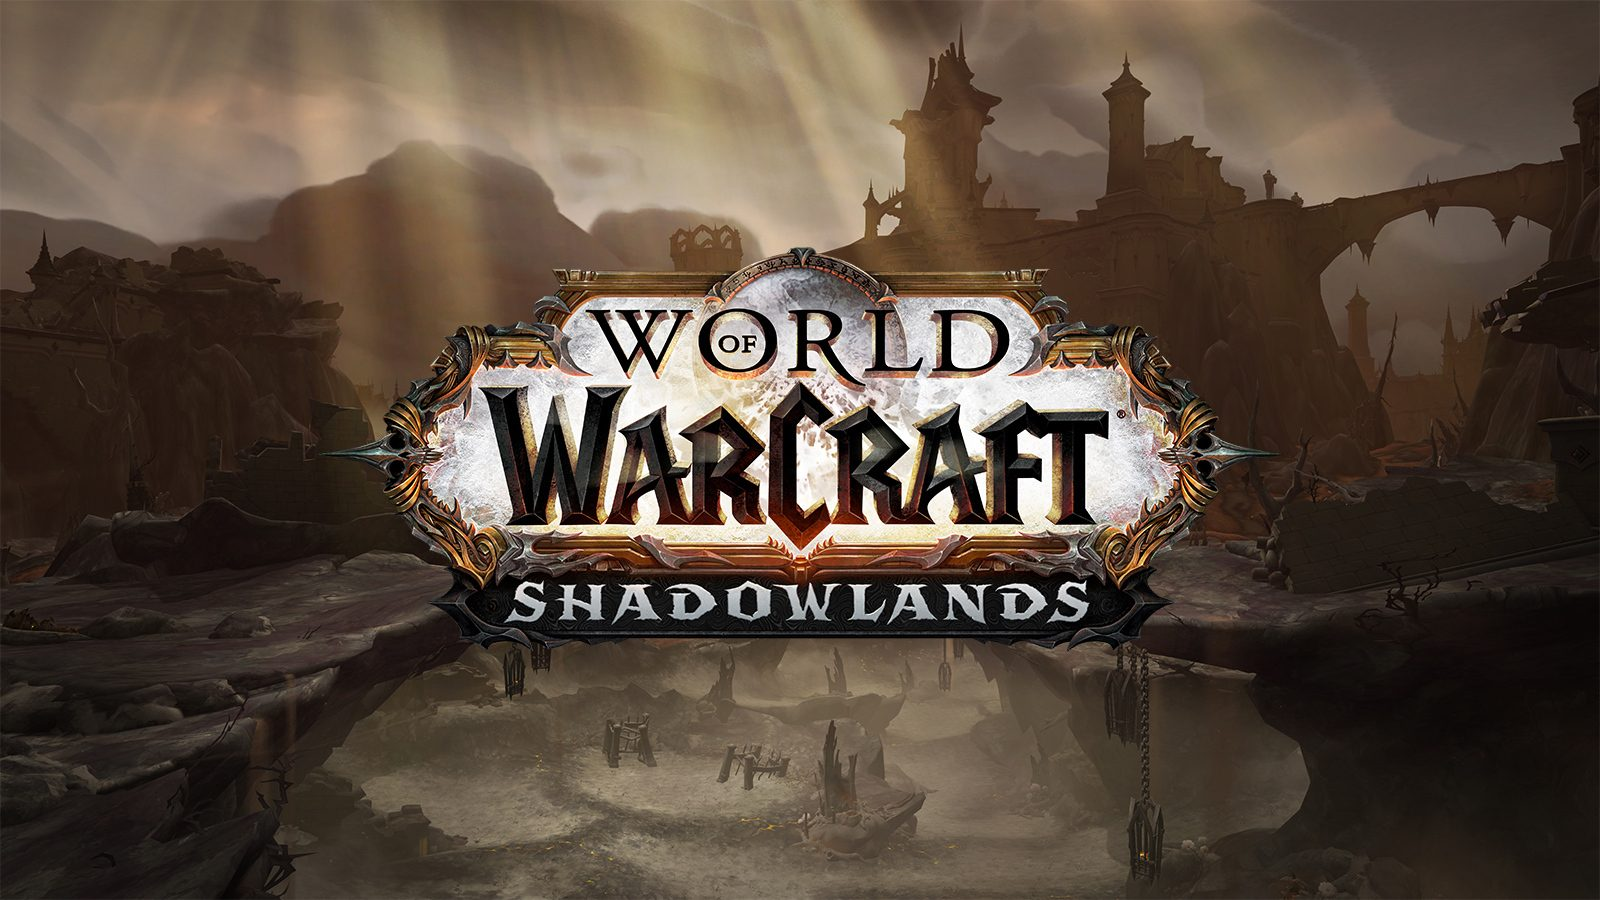 World of Warcraft: Shadowlands | BlizzCon 2019: Every Controversy and Every Announcement | Gammicks